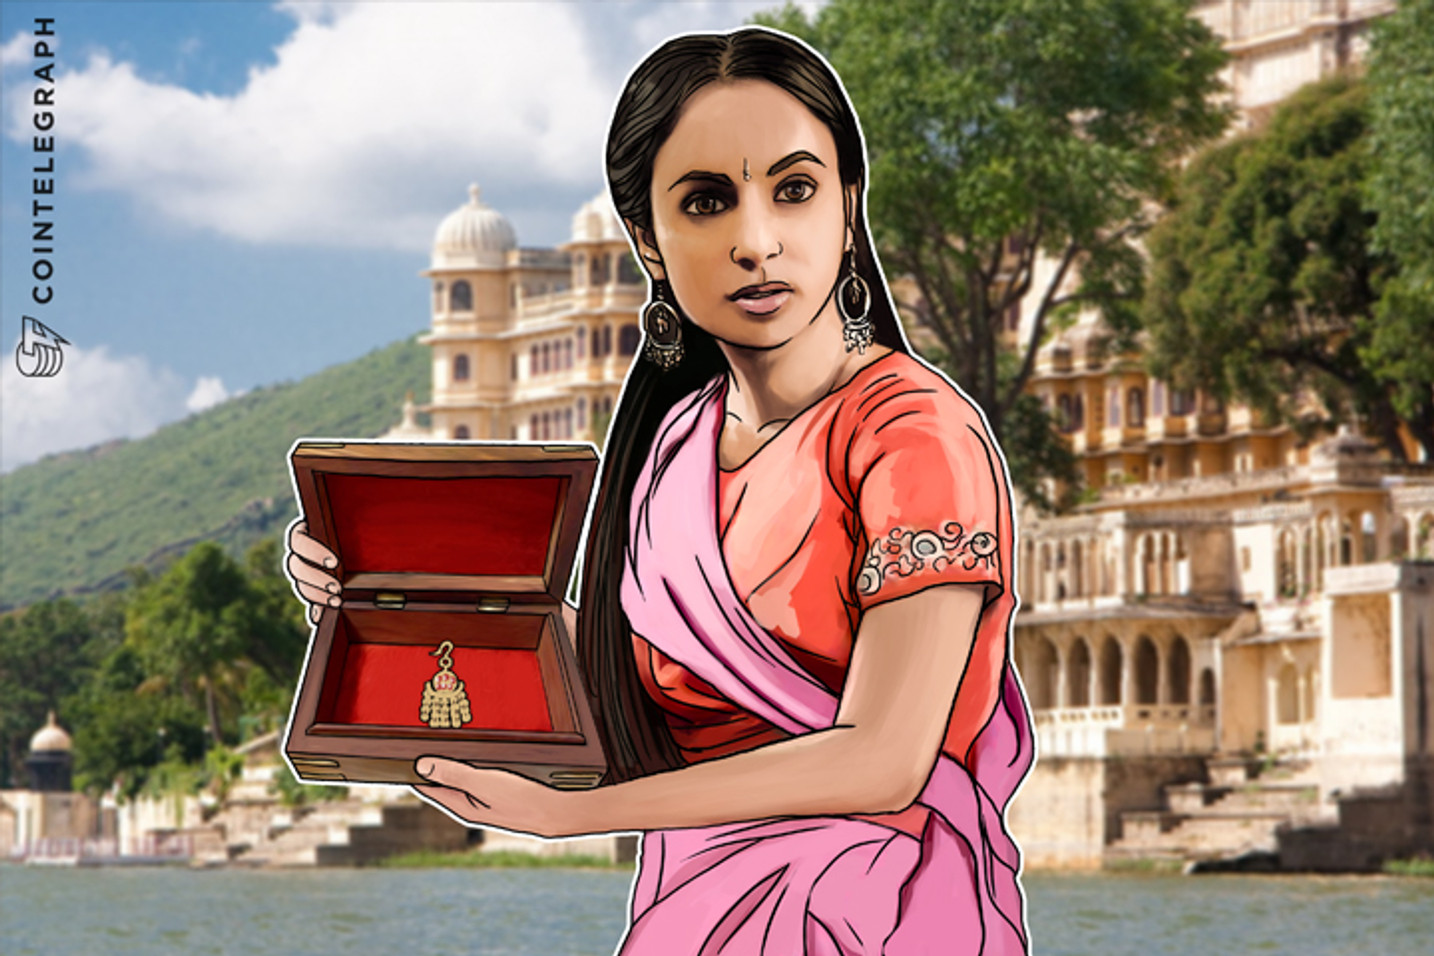 India to Ban Gold Importation; Bitcoin Price Rally, Market Shock Imminent